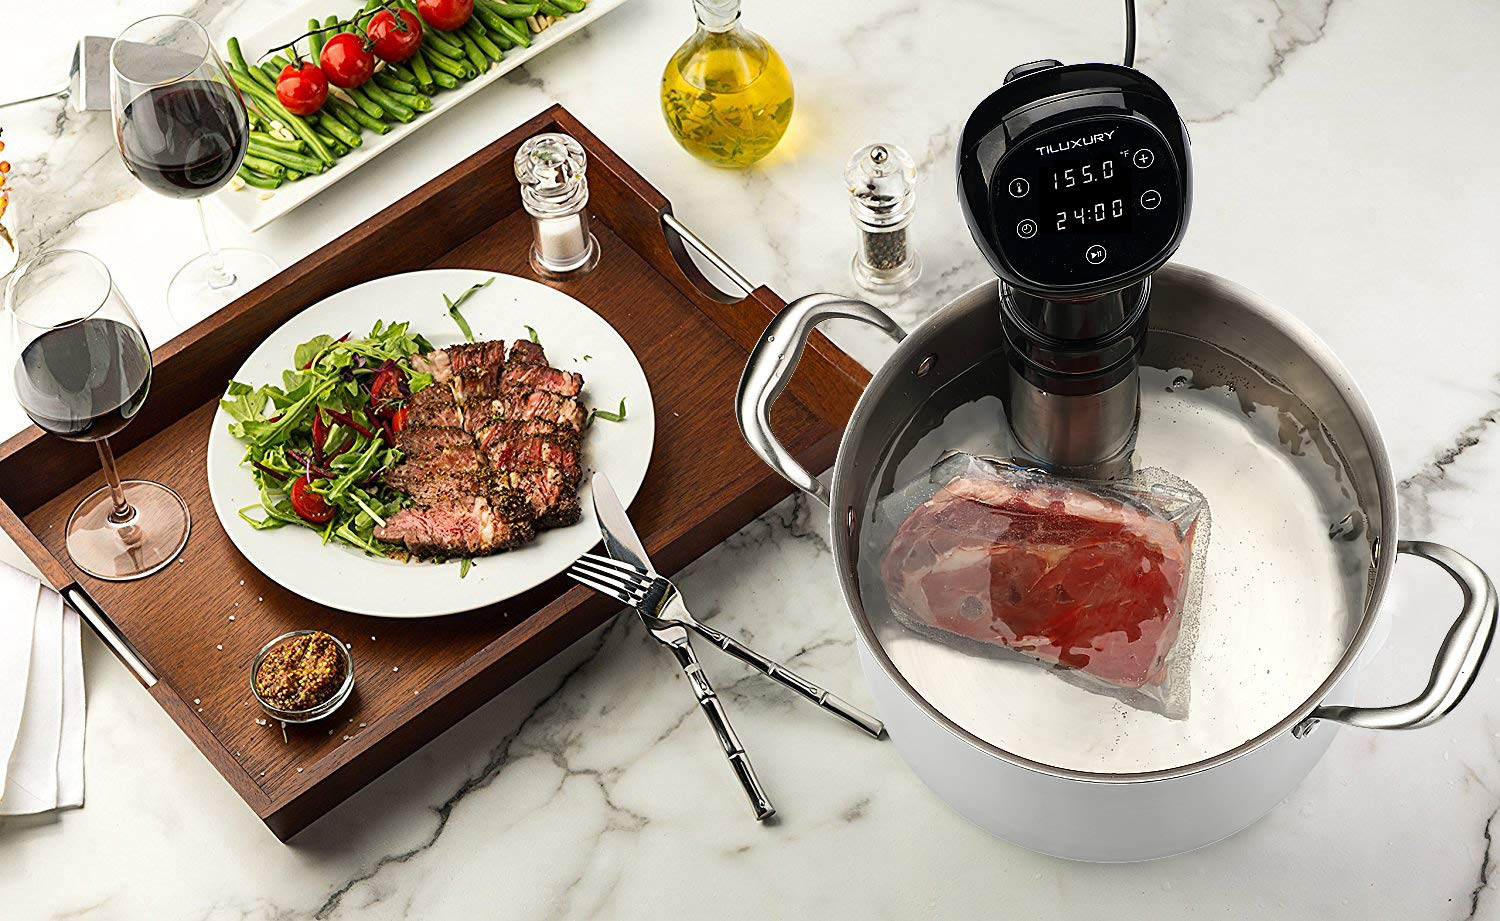 Precise Immersion Circulator Sous Vide Cooker, LCD Touch Screen, Accurate Time and Temperature Control, 800 Watts, Durable Stainless Steel Stick, Ultra Quiet, Black by US PIEDLE (Image #7)